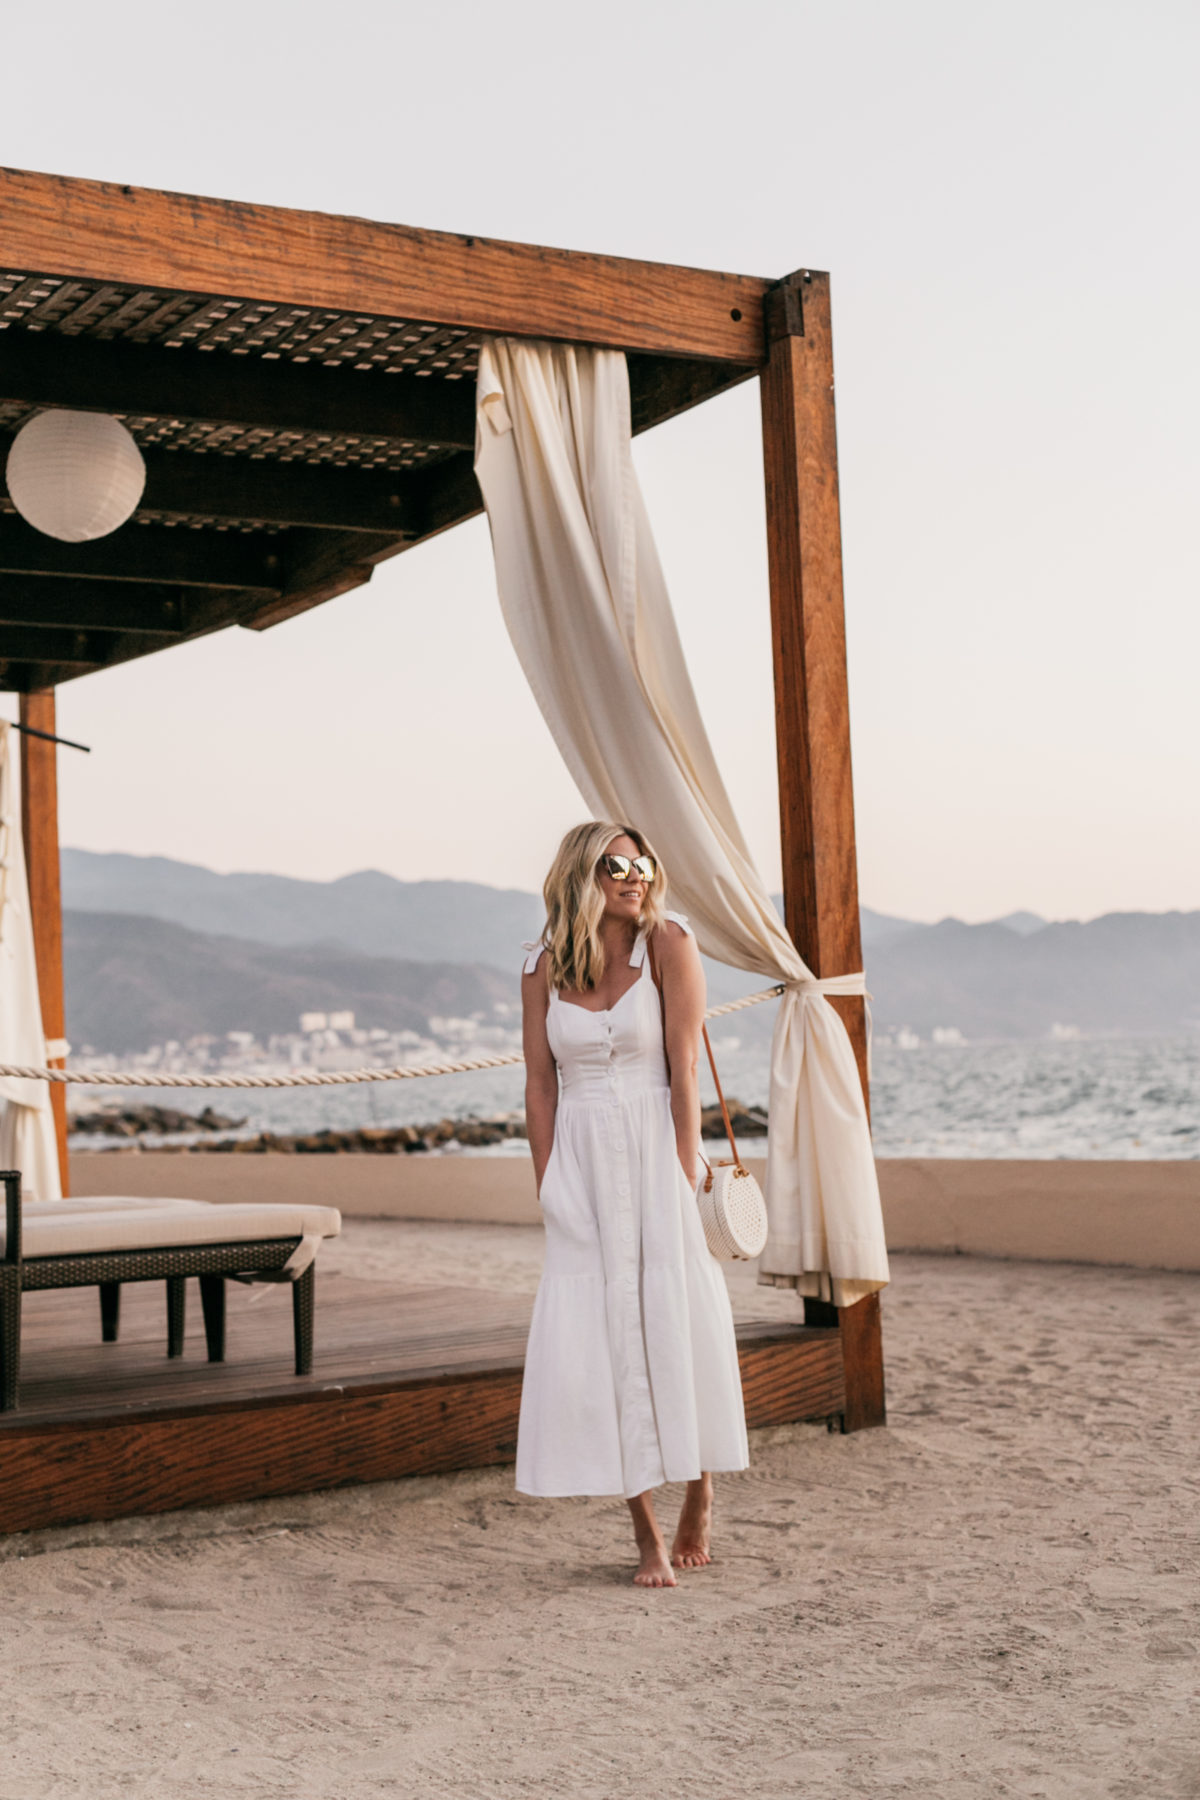 One Small Blonde is featuring a White Midi Dress // Circle Rattan Bag // Sunglasses